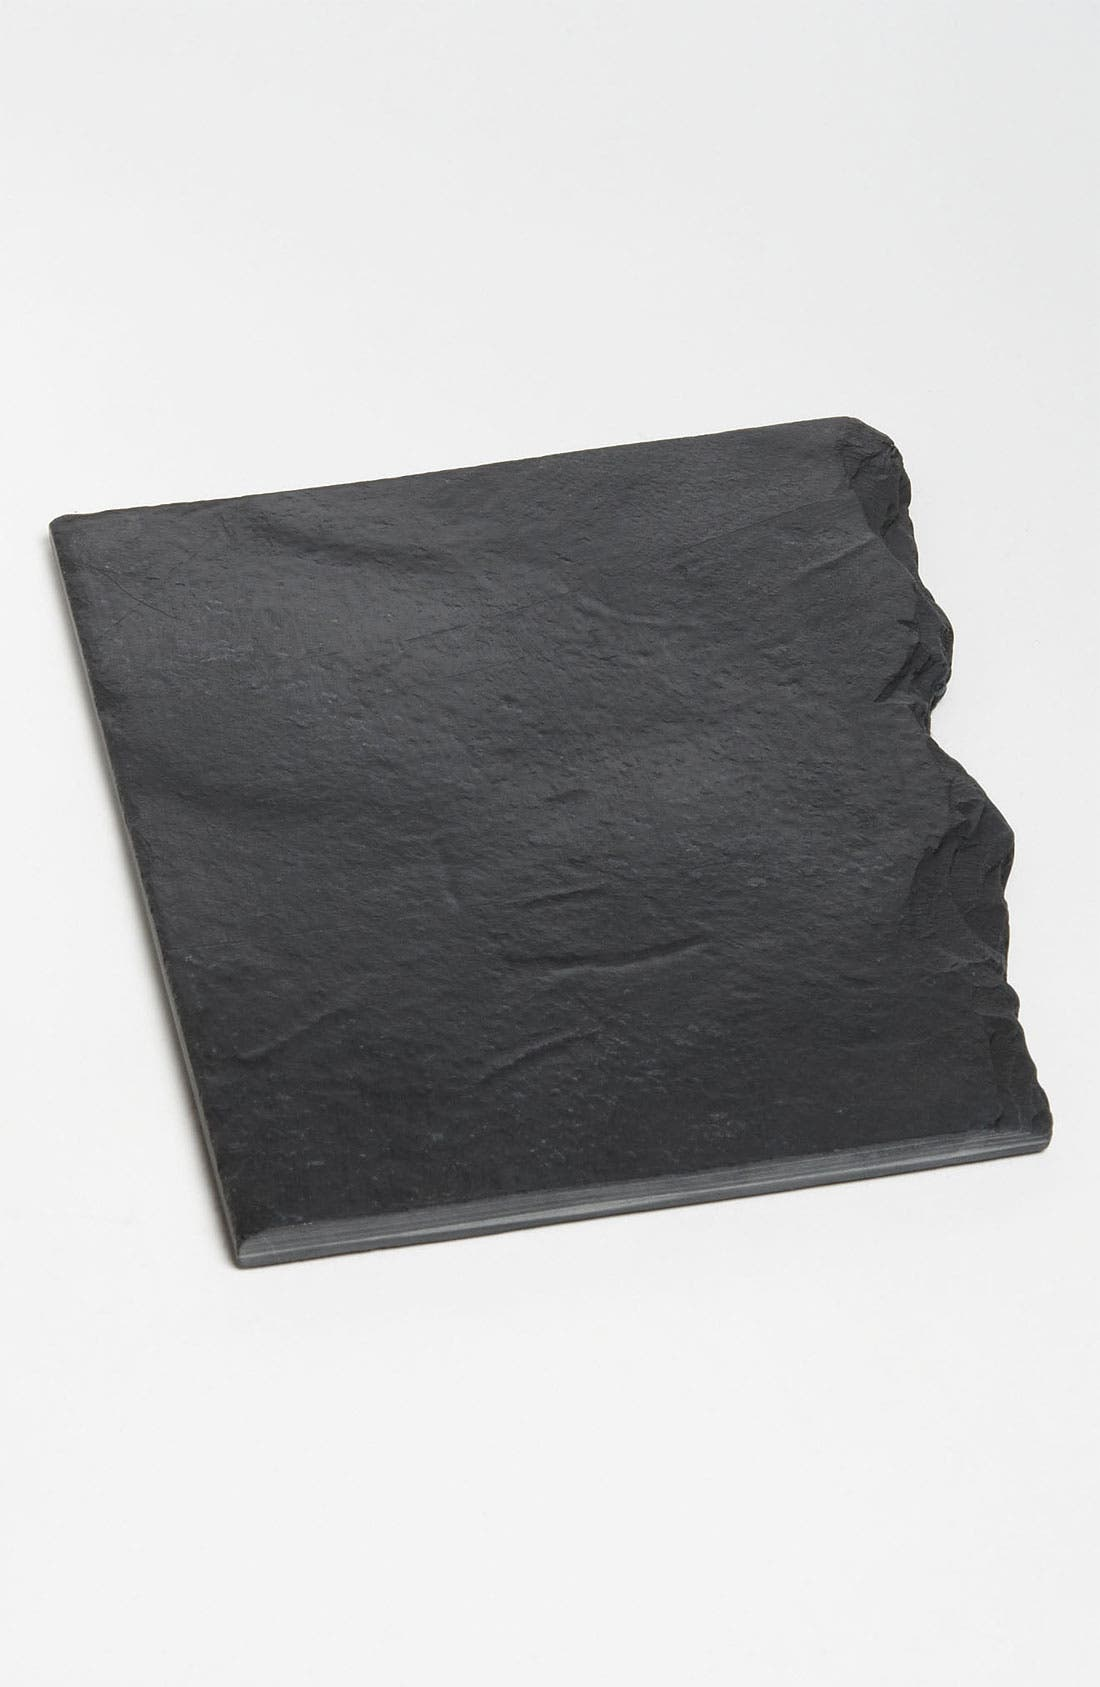 Alternate Image 1 Selected - Slate Serving Board